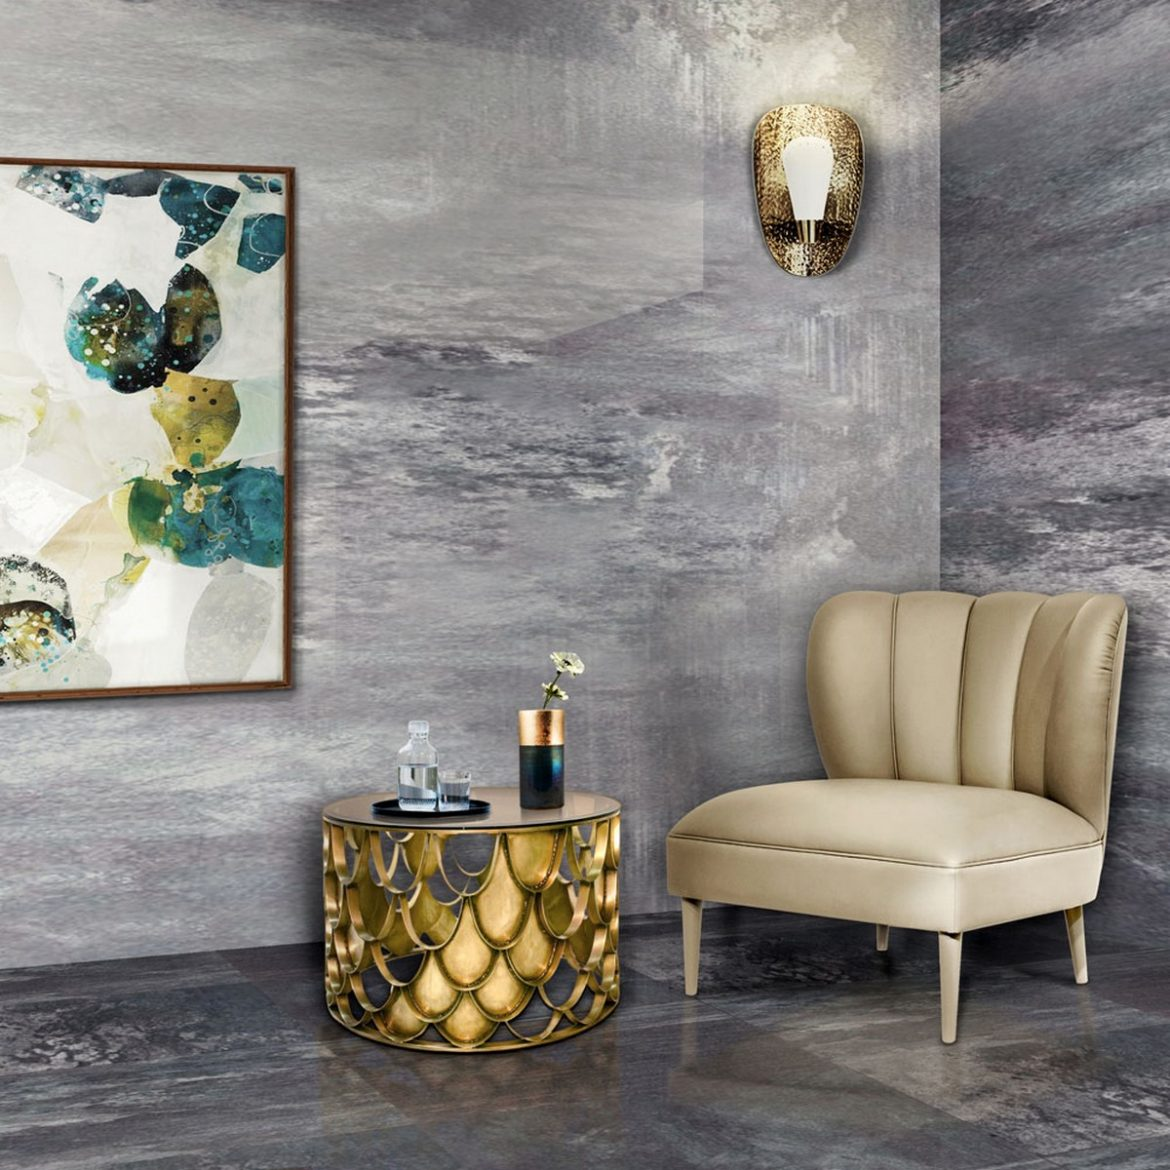 center tables The Most Exquisite Center Tables For Your Home Decor koi